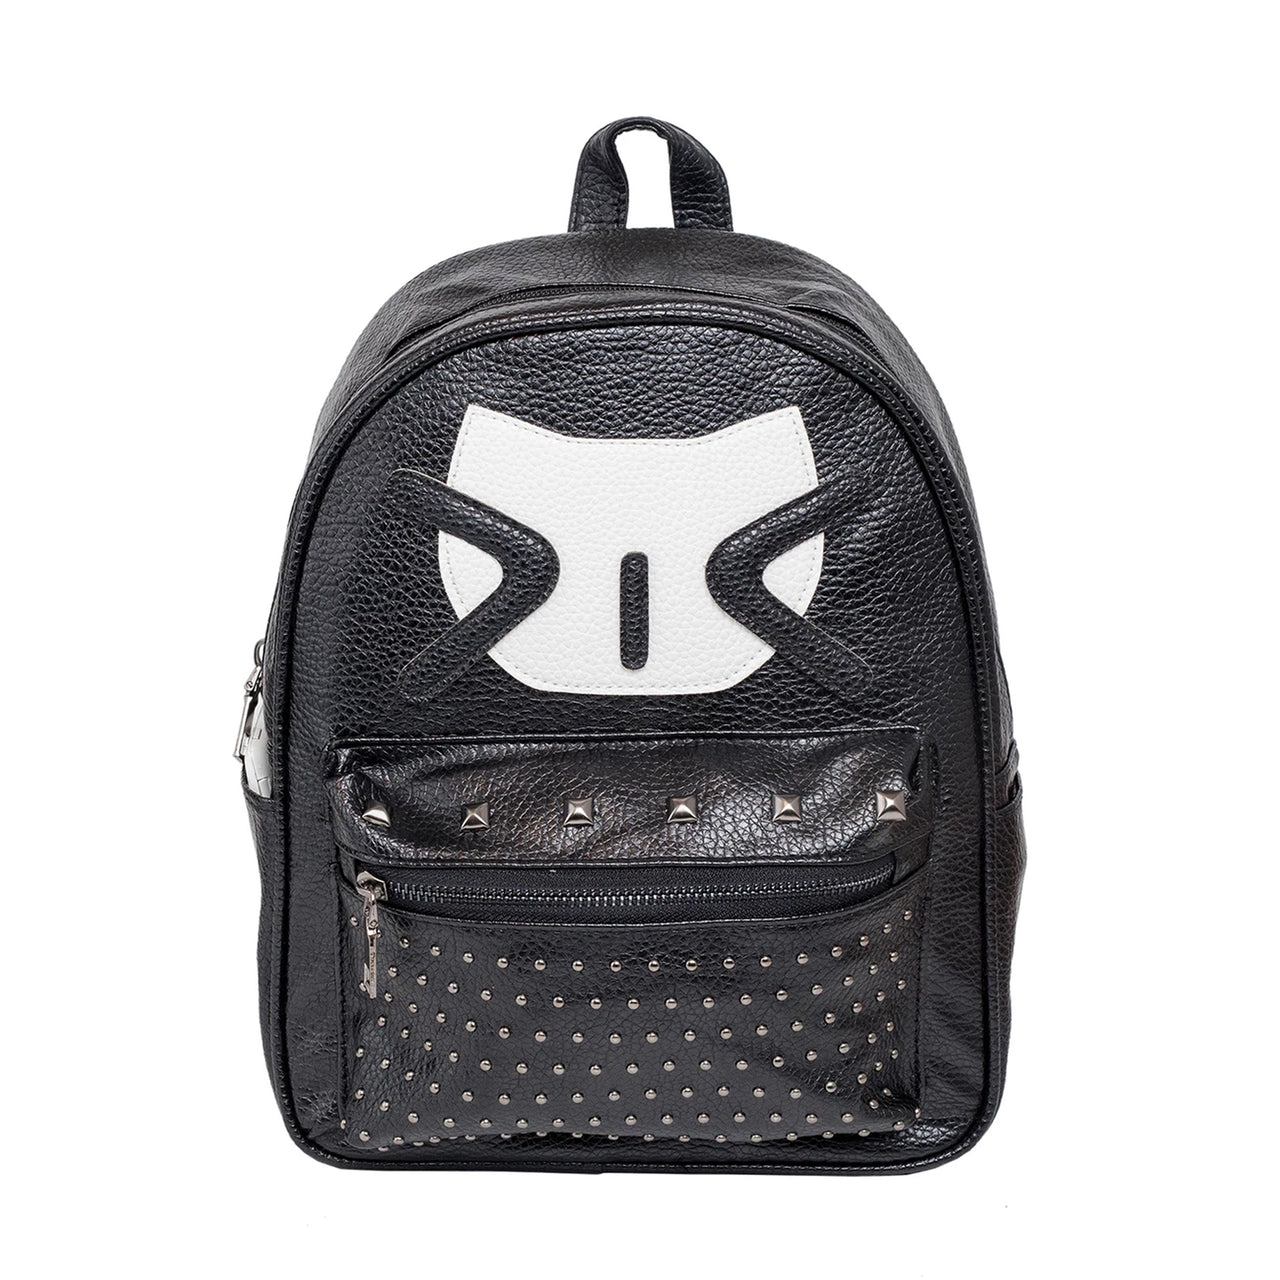 Studded Backpack - Owl